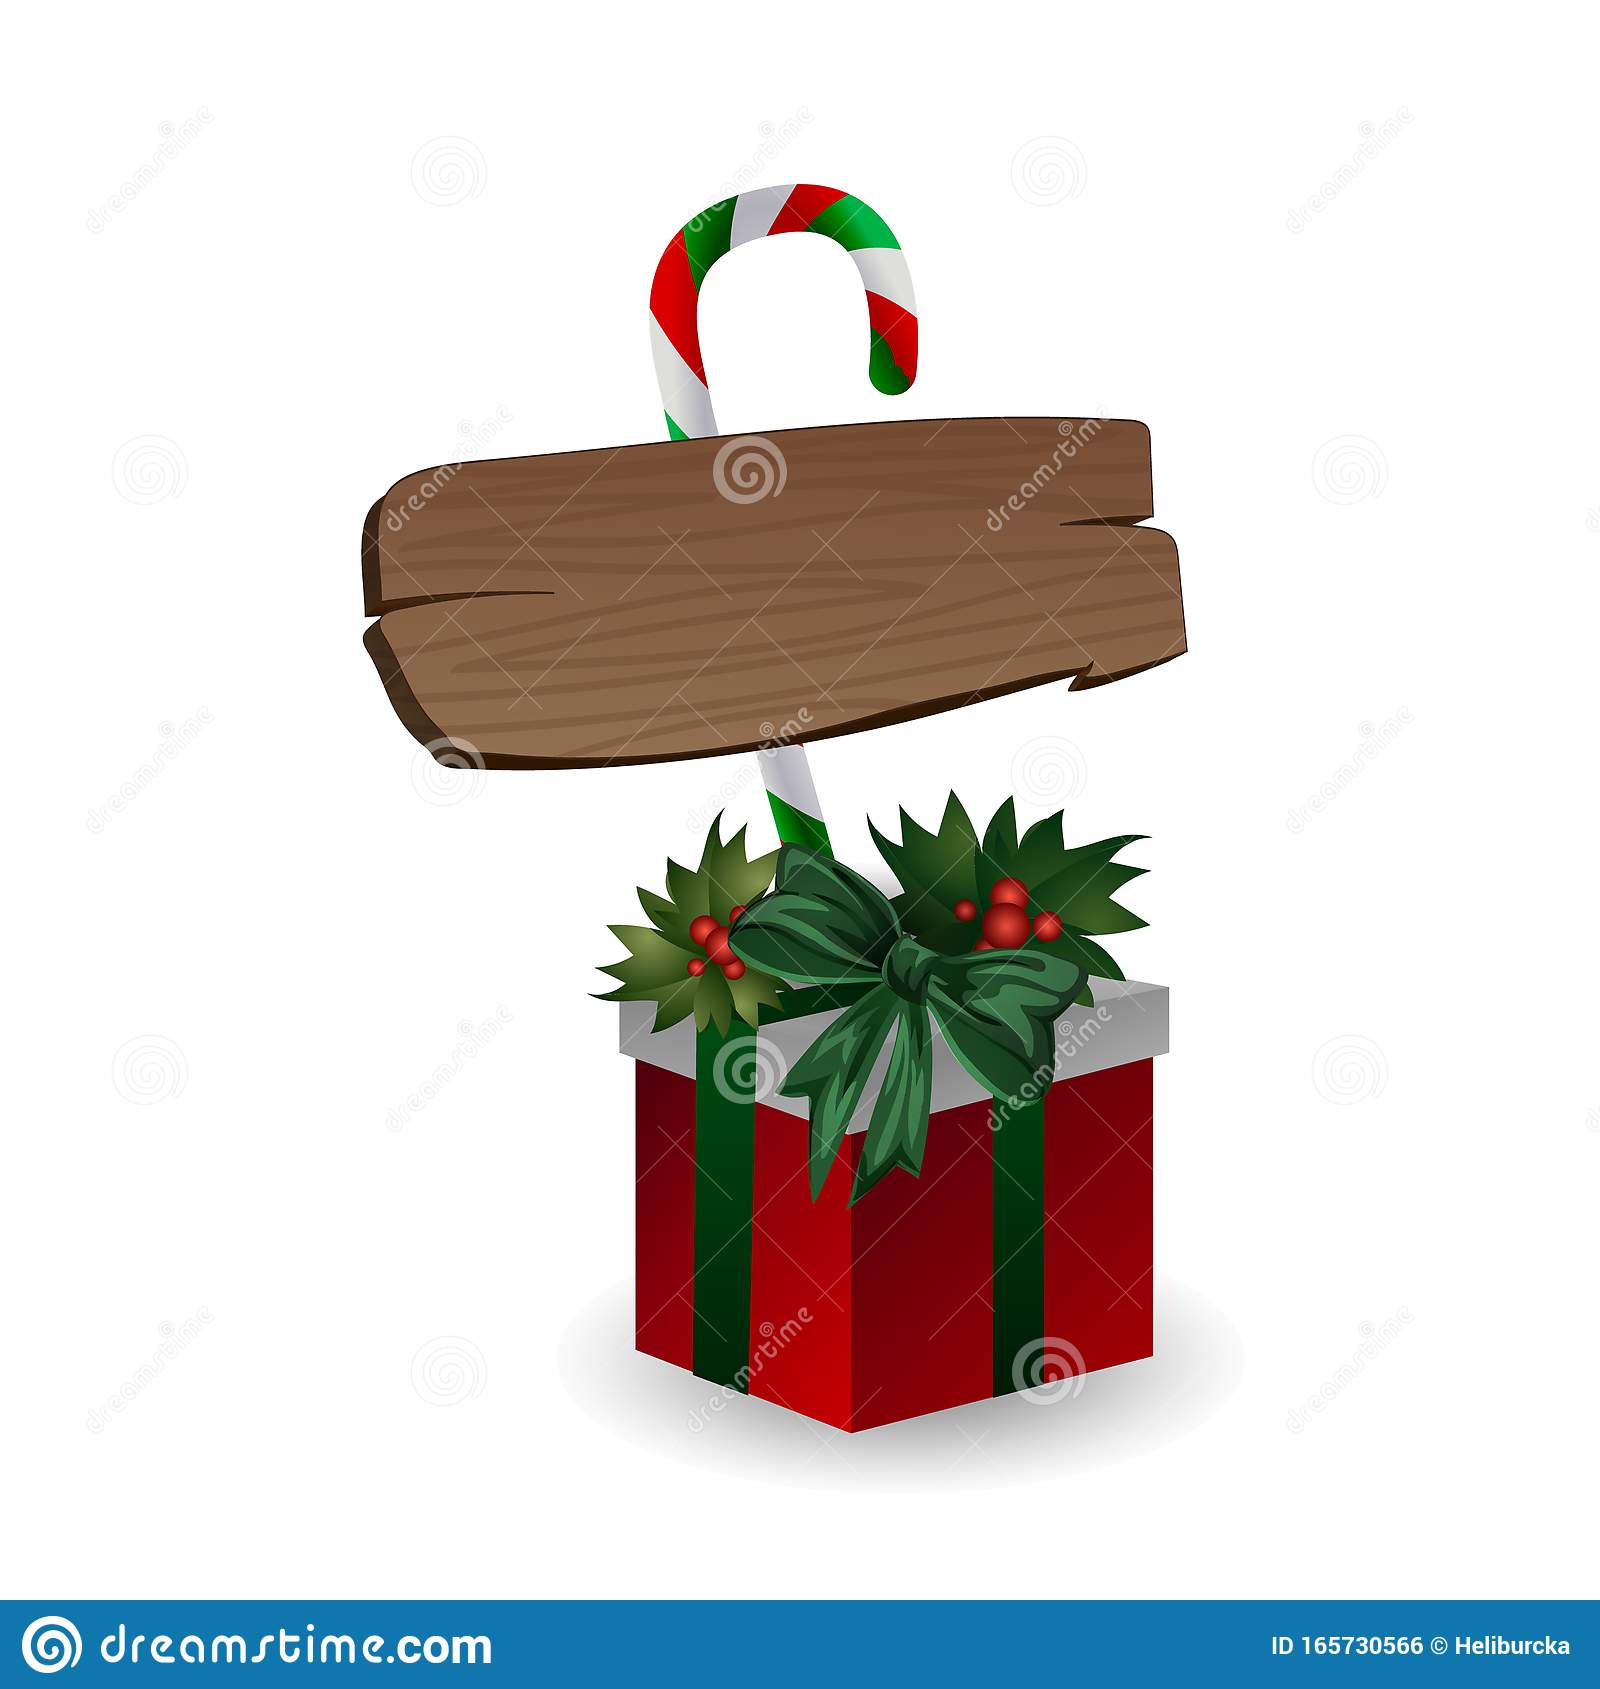 Festive Composition With Wooden Board With Candy And Christmas Tree Branches On A Gift Box Decorated With Bows On A Stock Vector Illustration Of Decor Branches 165730566